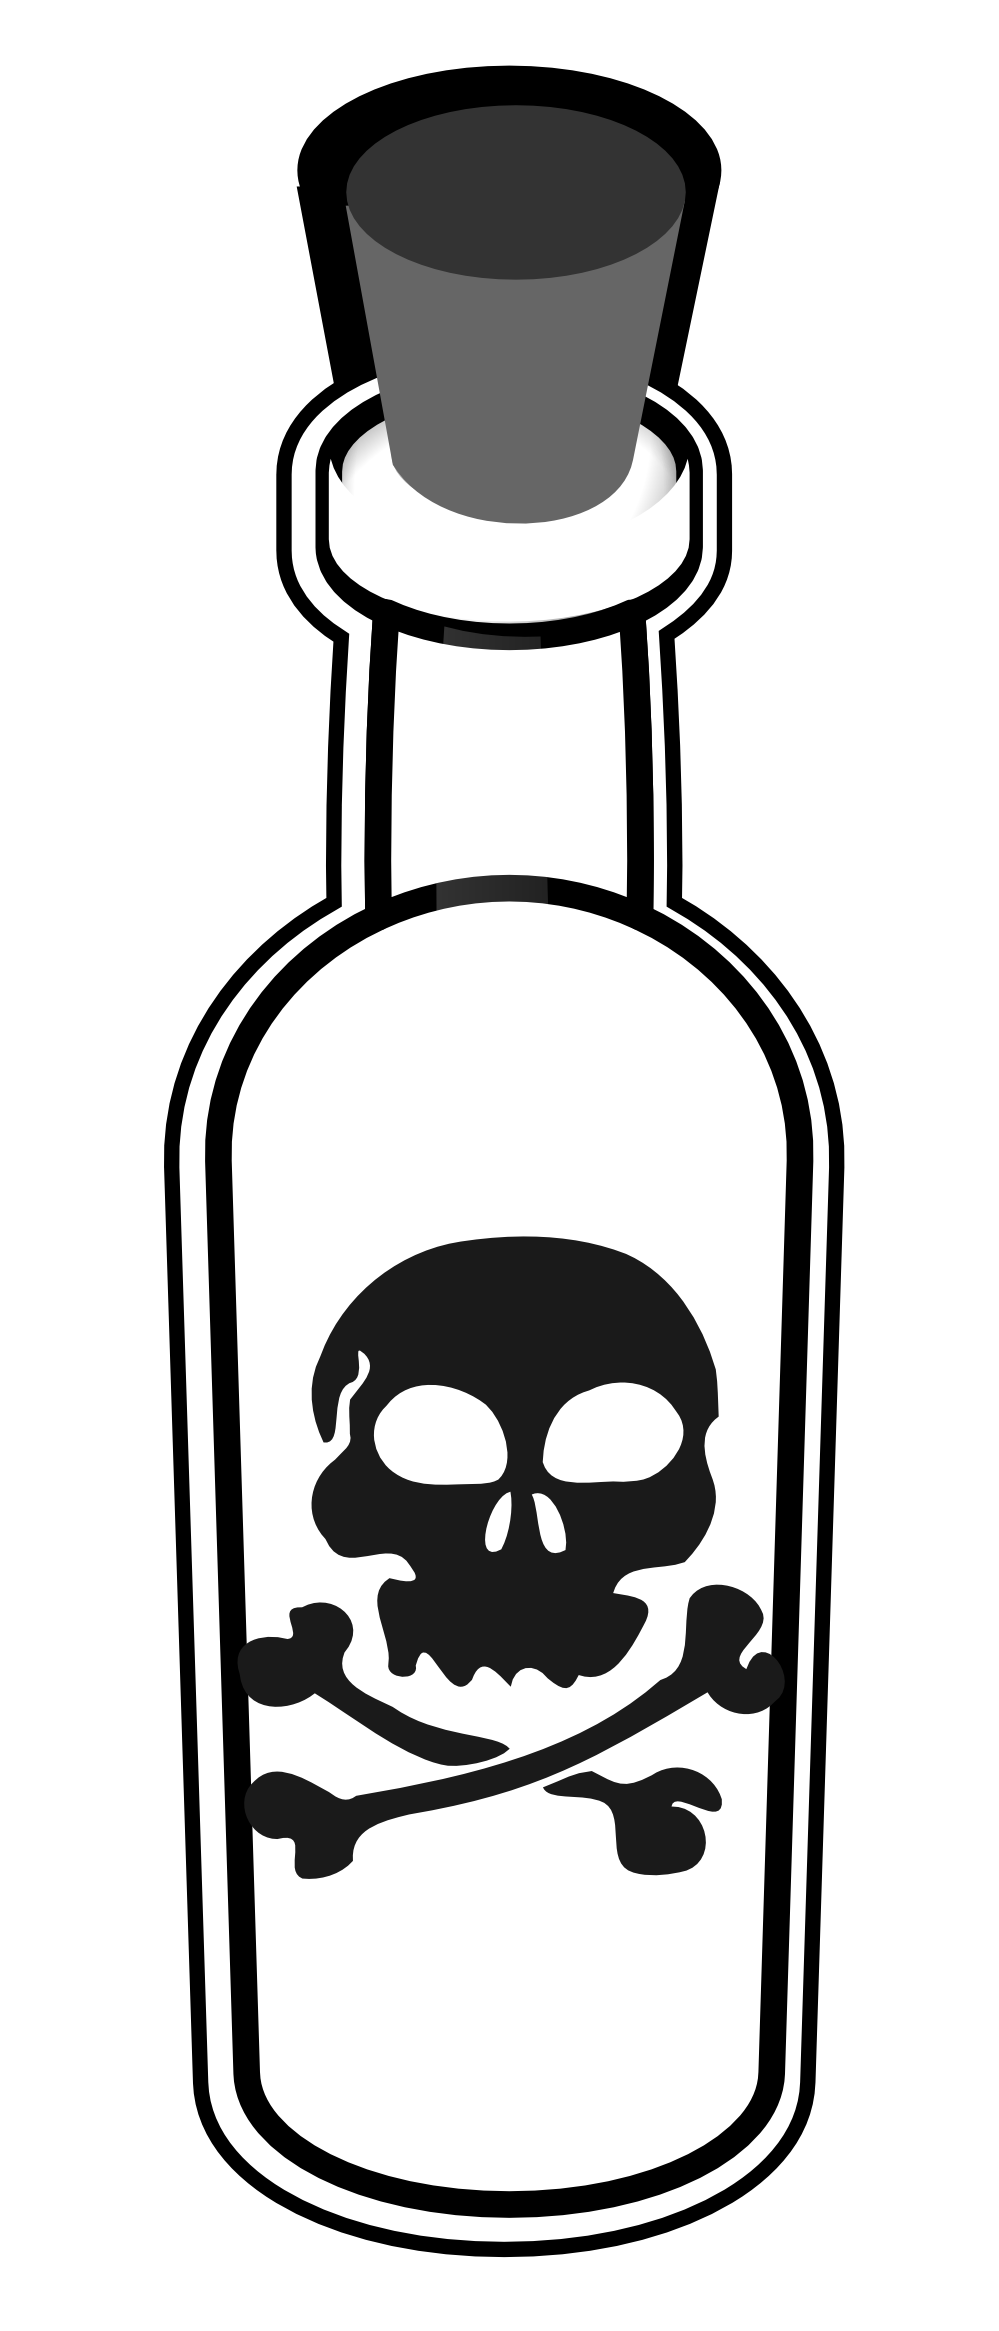 Dirt clipart splat. Poison